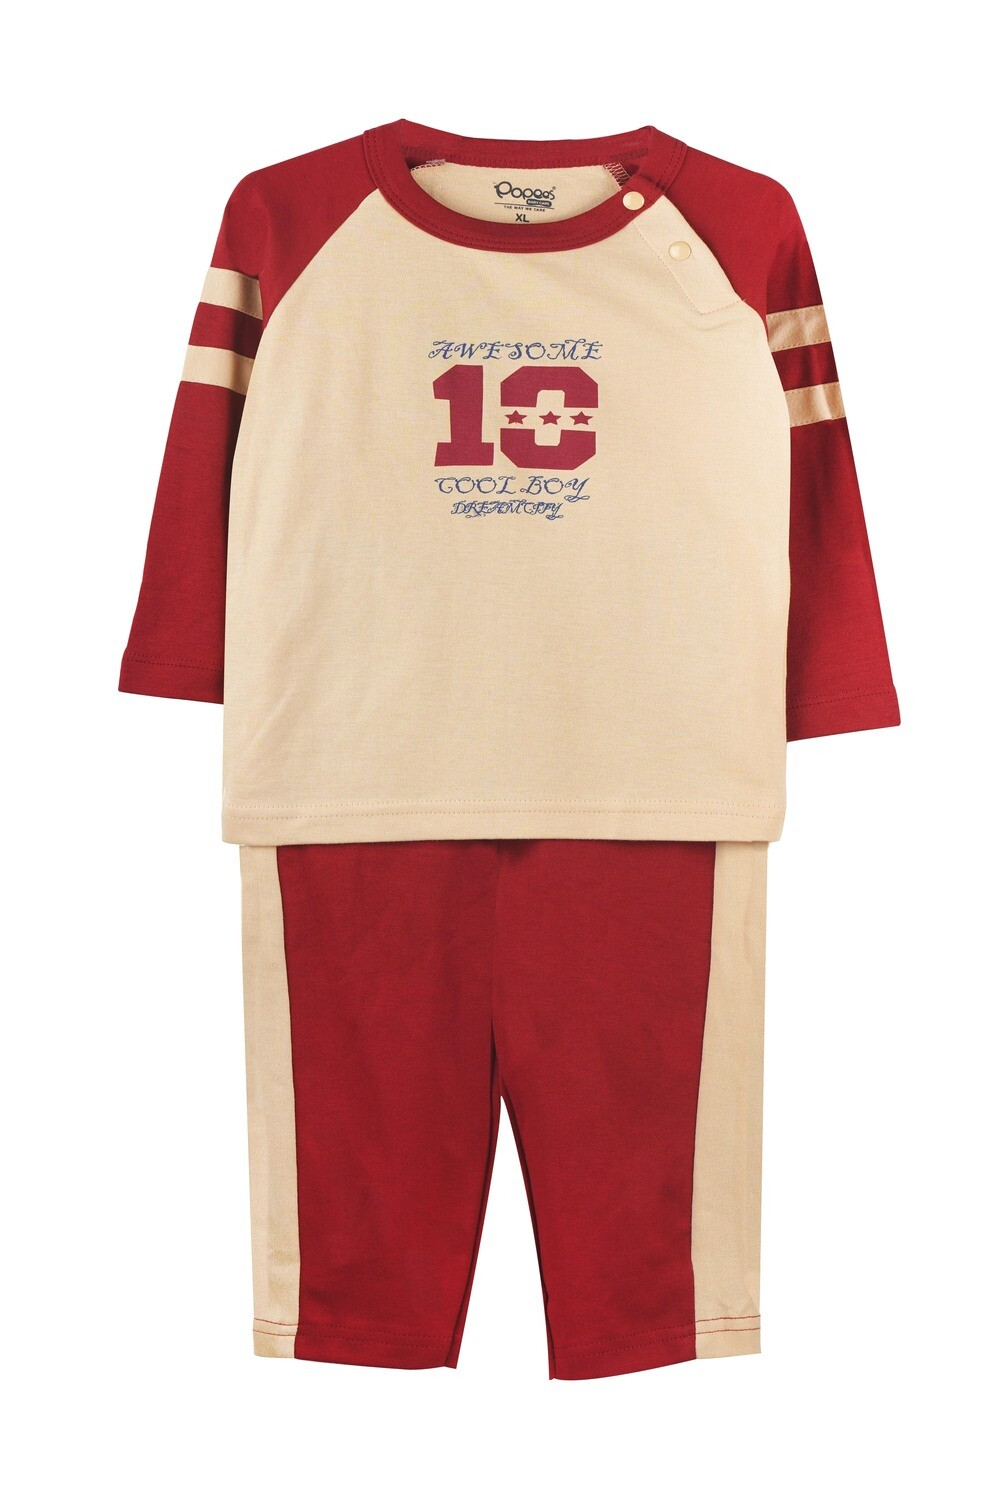 ELIGE GARNET Full Sleeve Top and Pant for Baby Boys